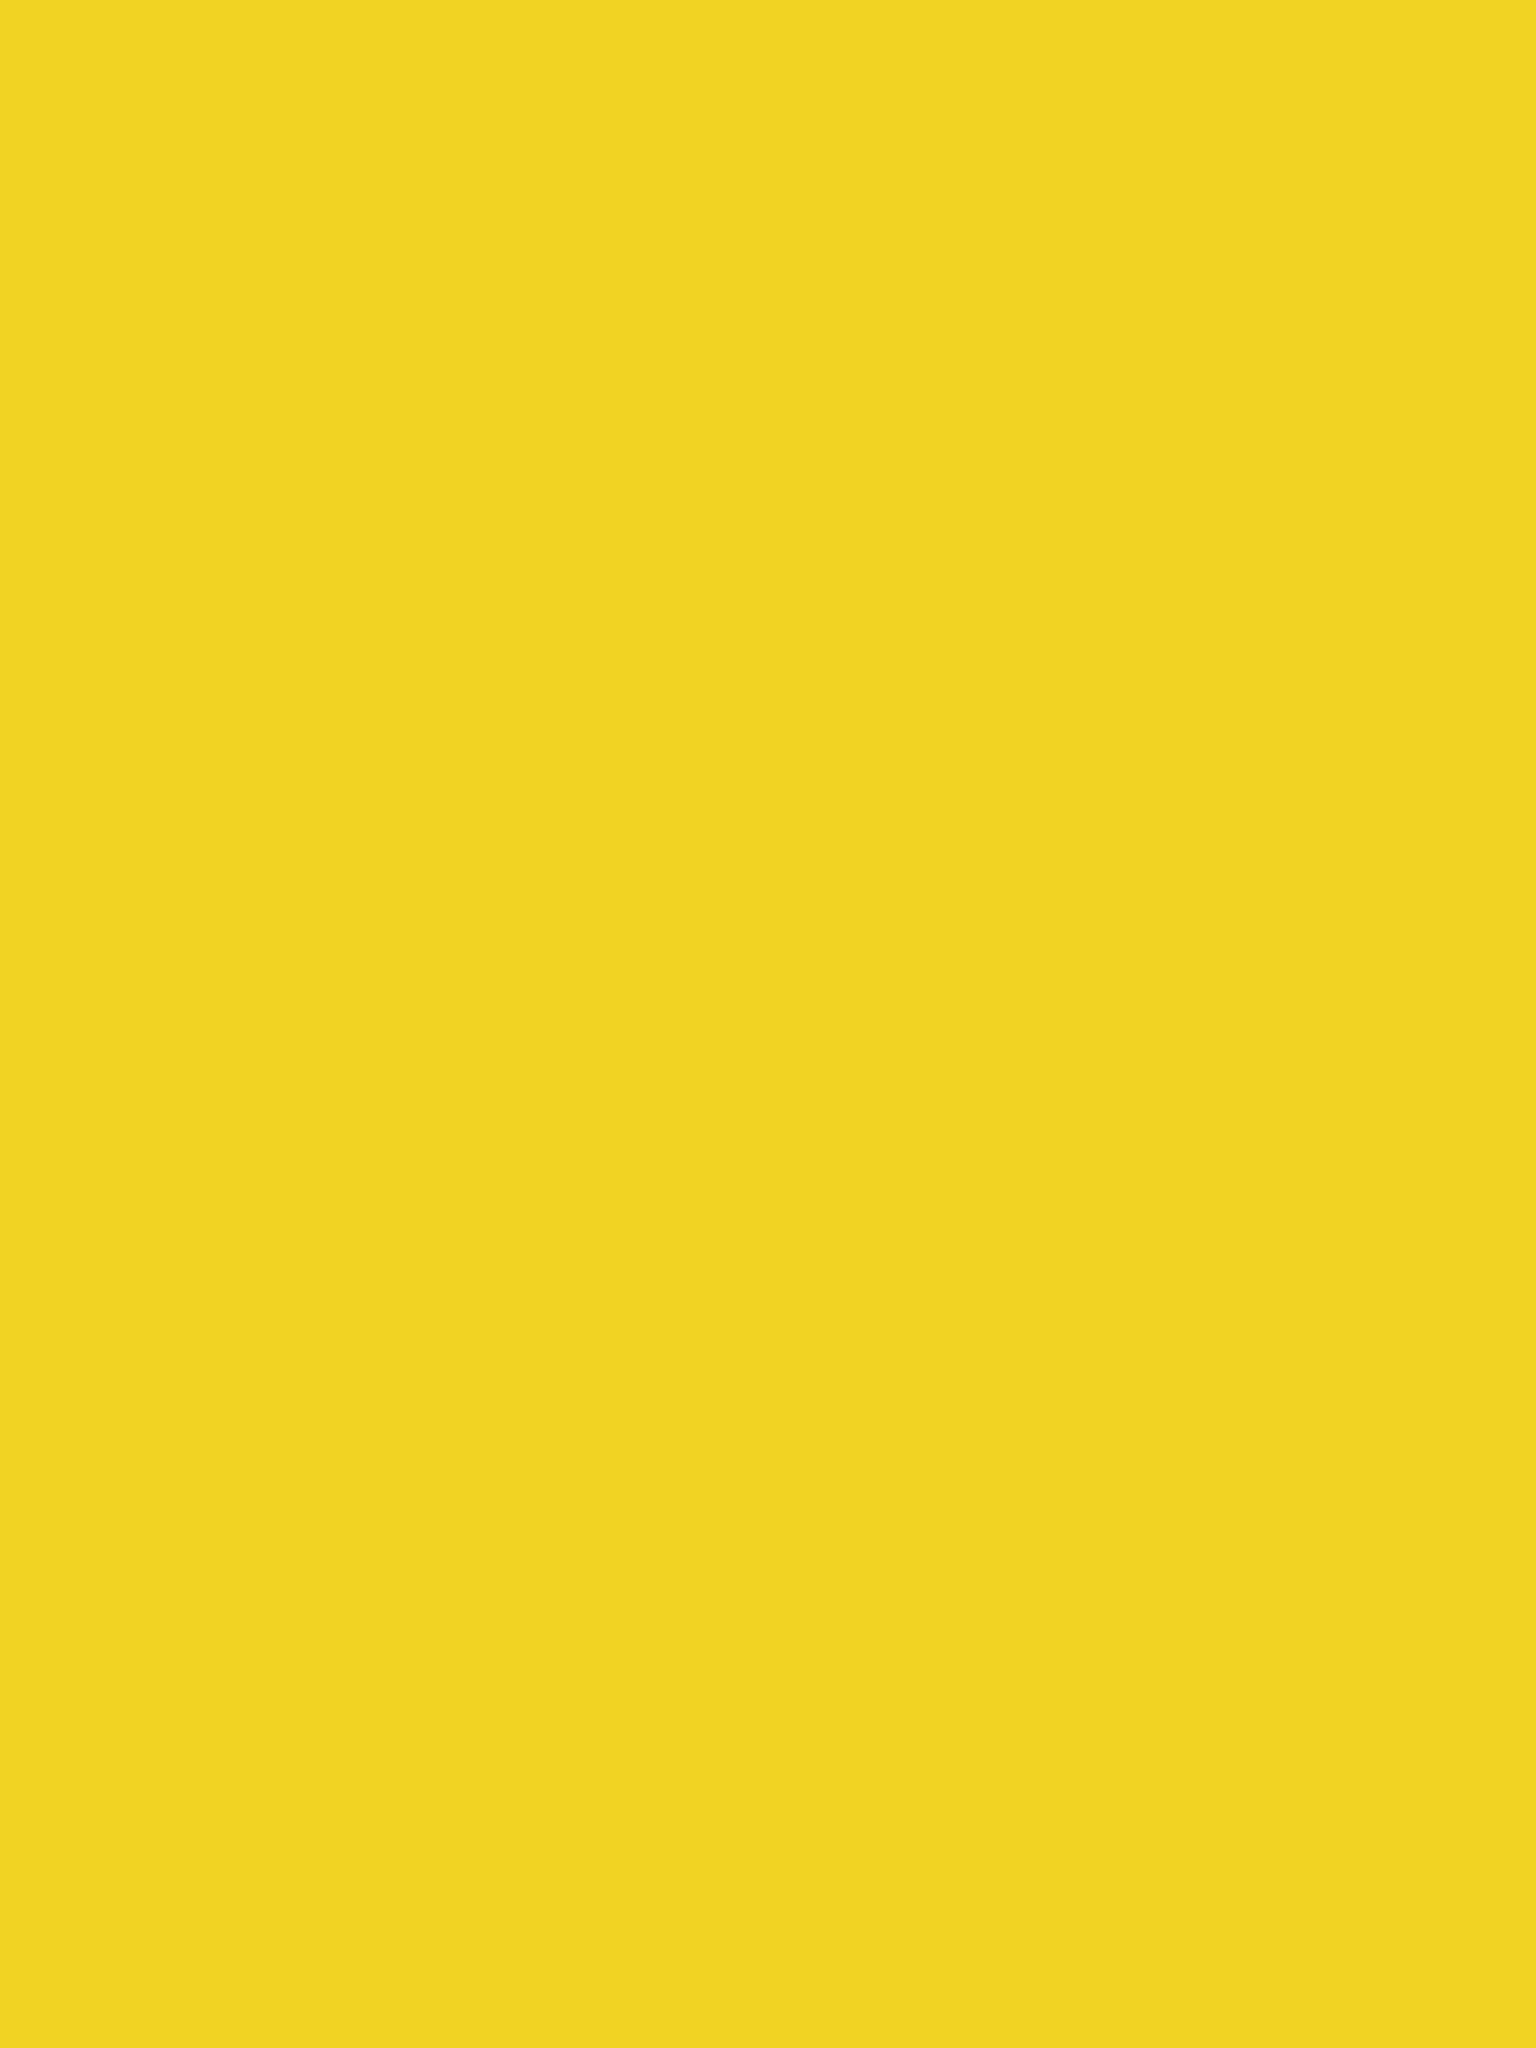 colour yellow 2.png